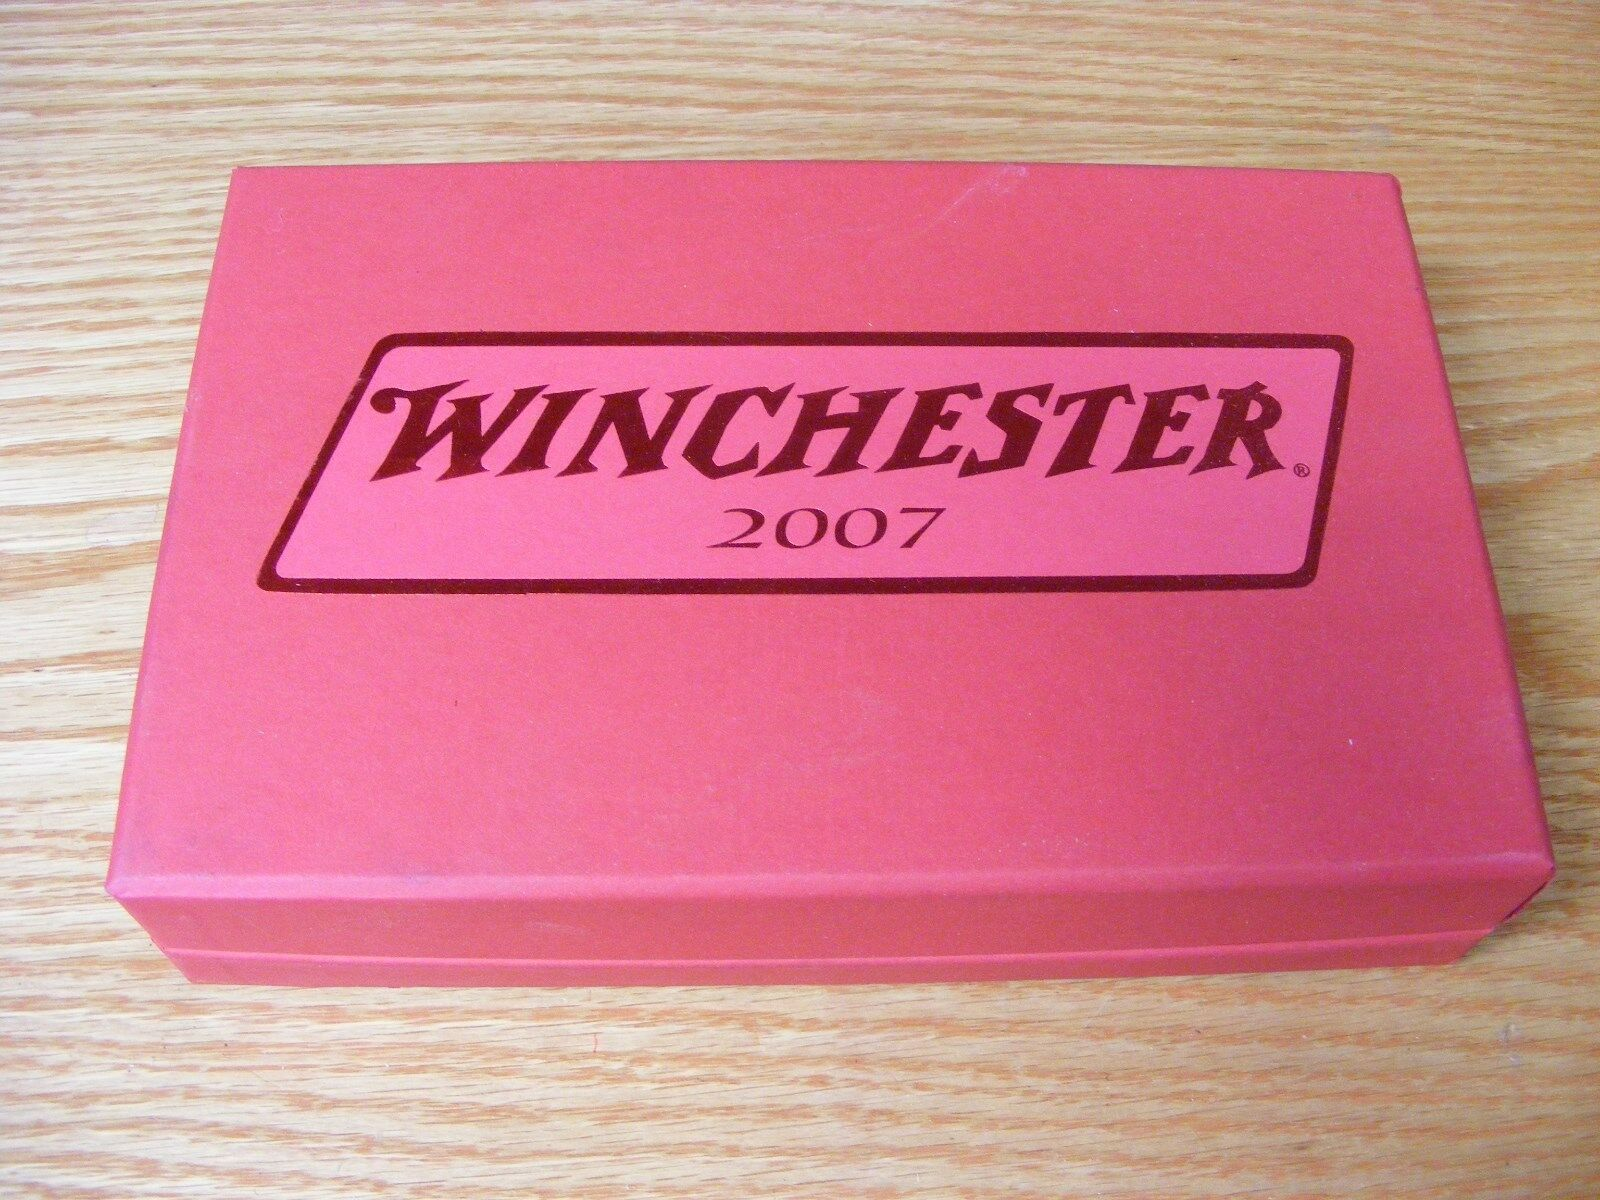 Winchester 4 Lure Set Master Box 2007 Sunset  Marble White Scale  export outlet